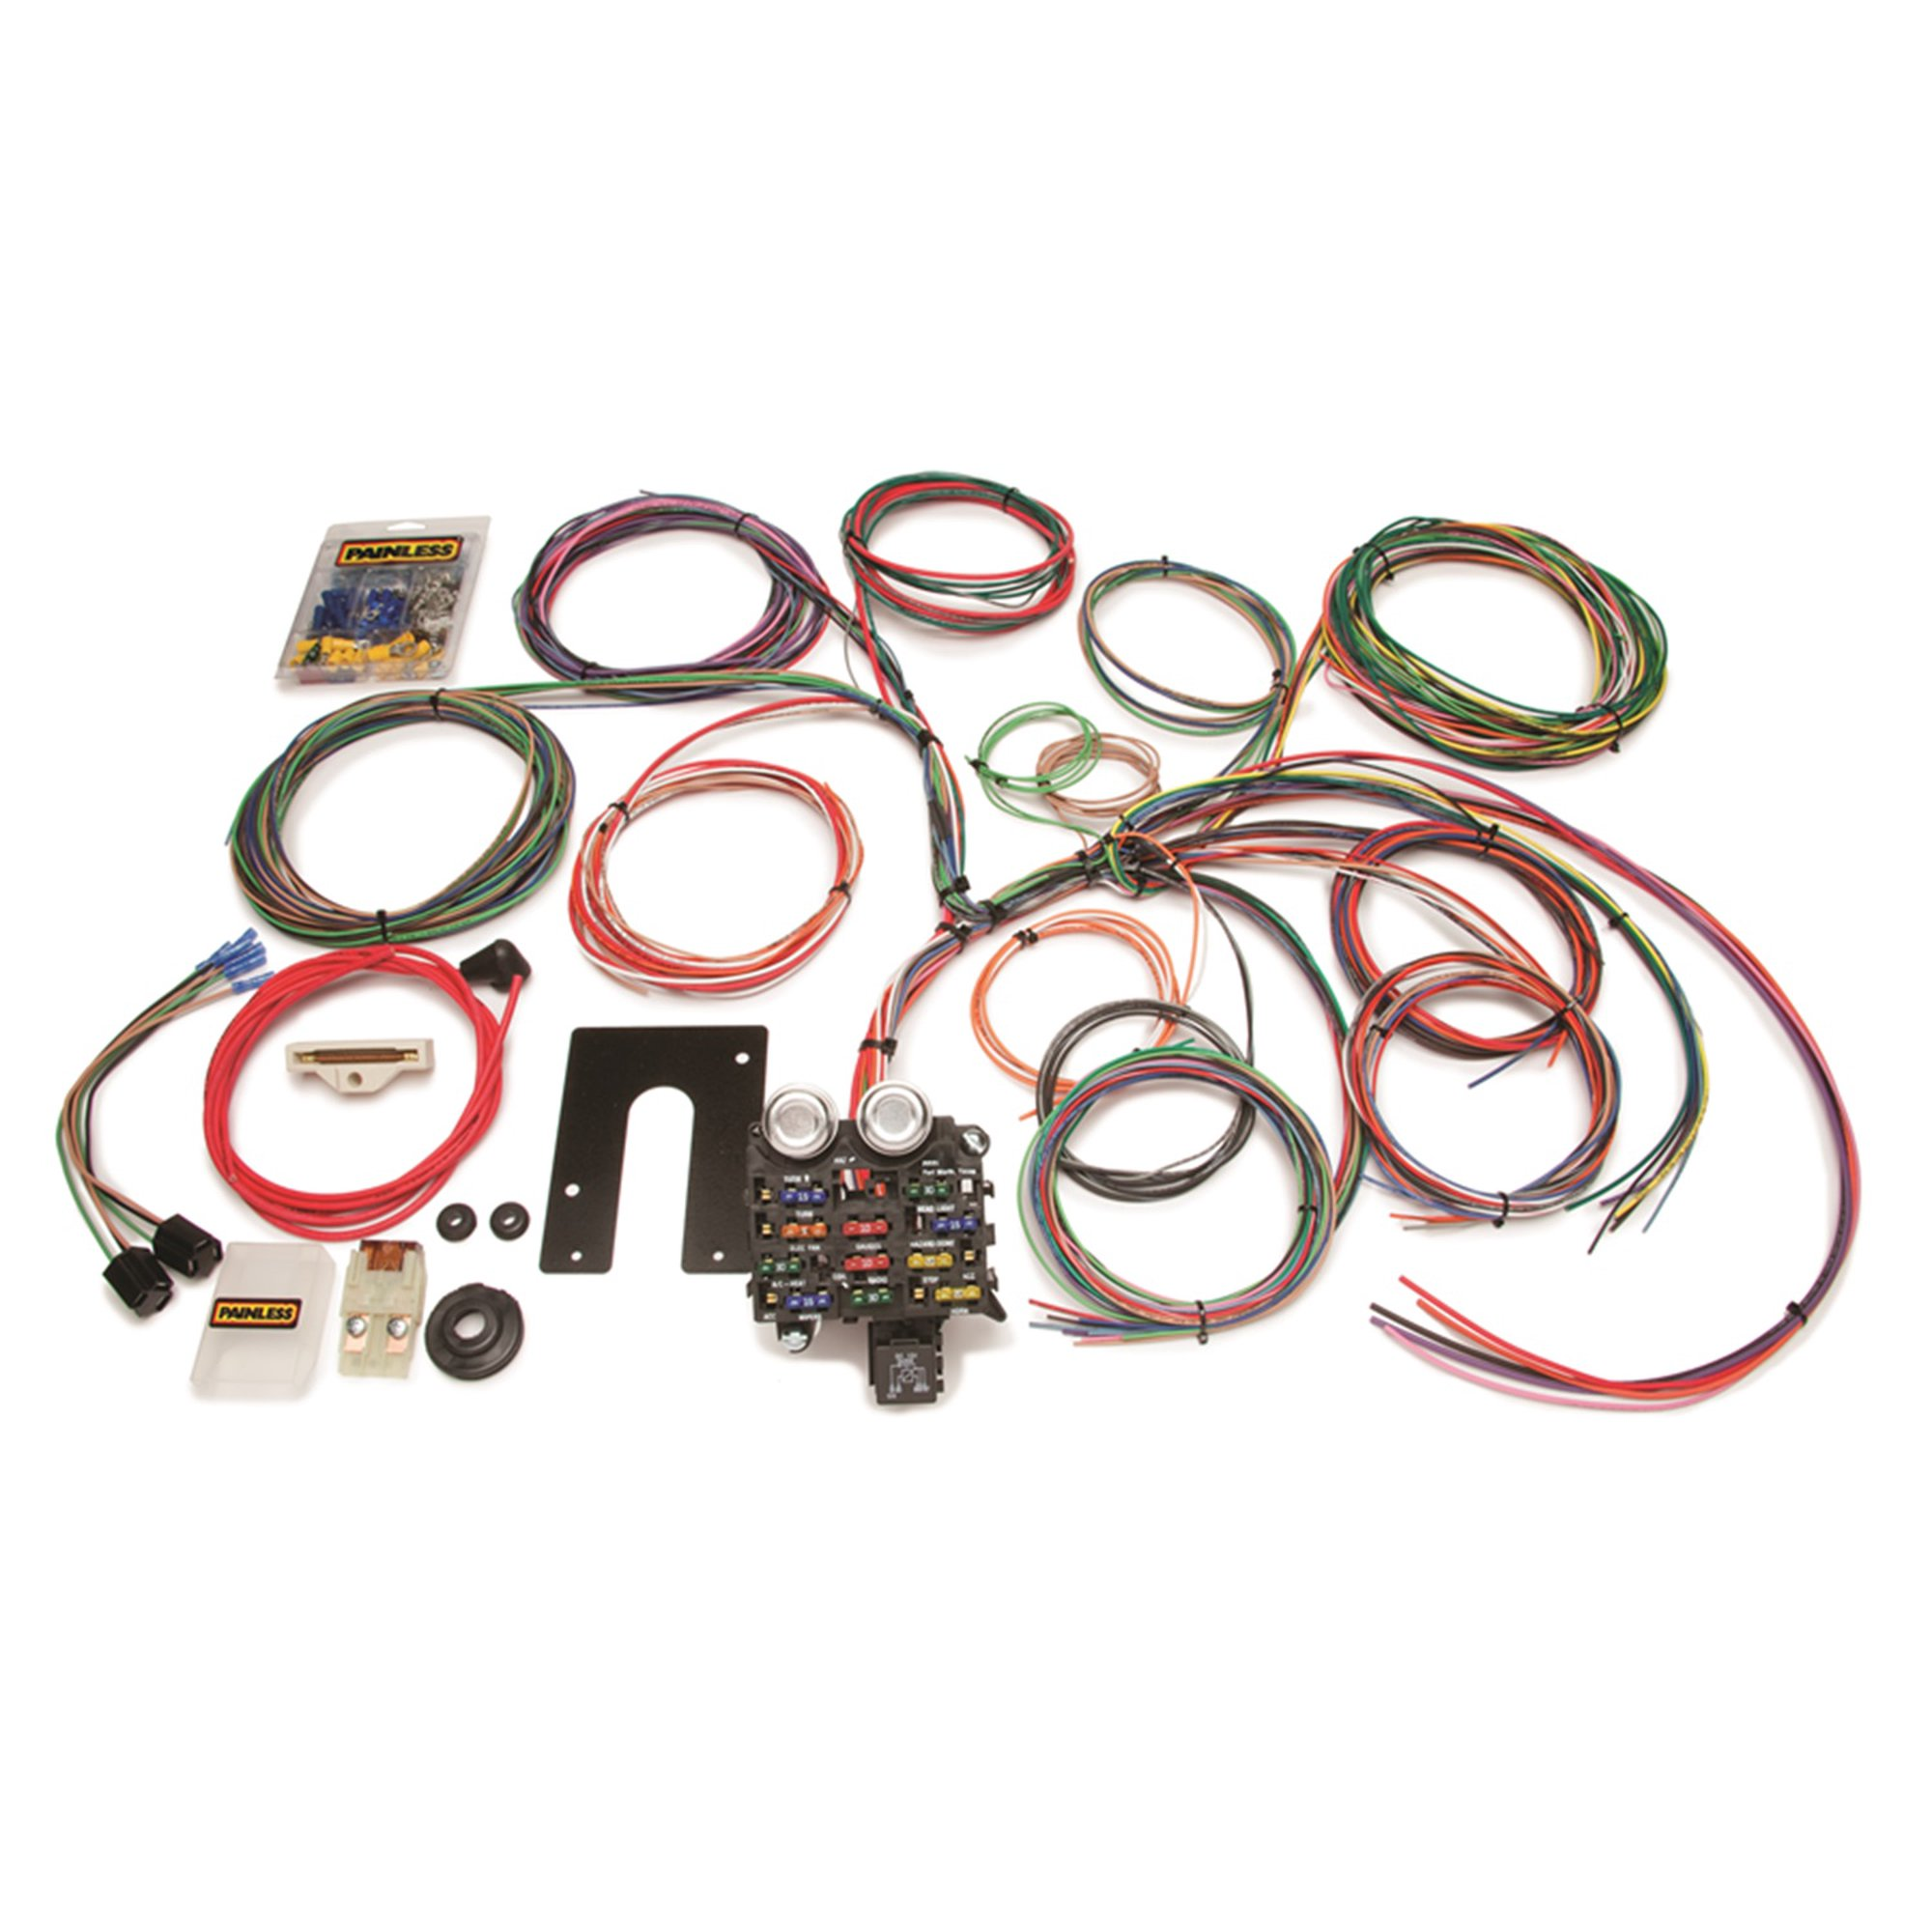 painless wiring harness and chassis xe 9072  painless wire harness connectors free diagram  painless wire harness connectors free